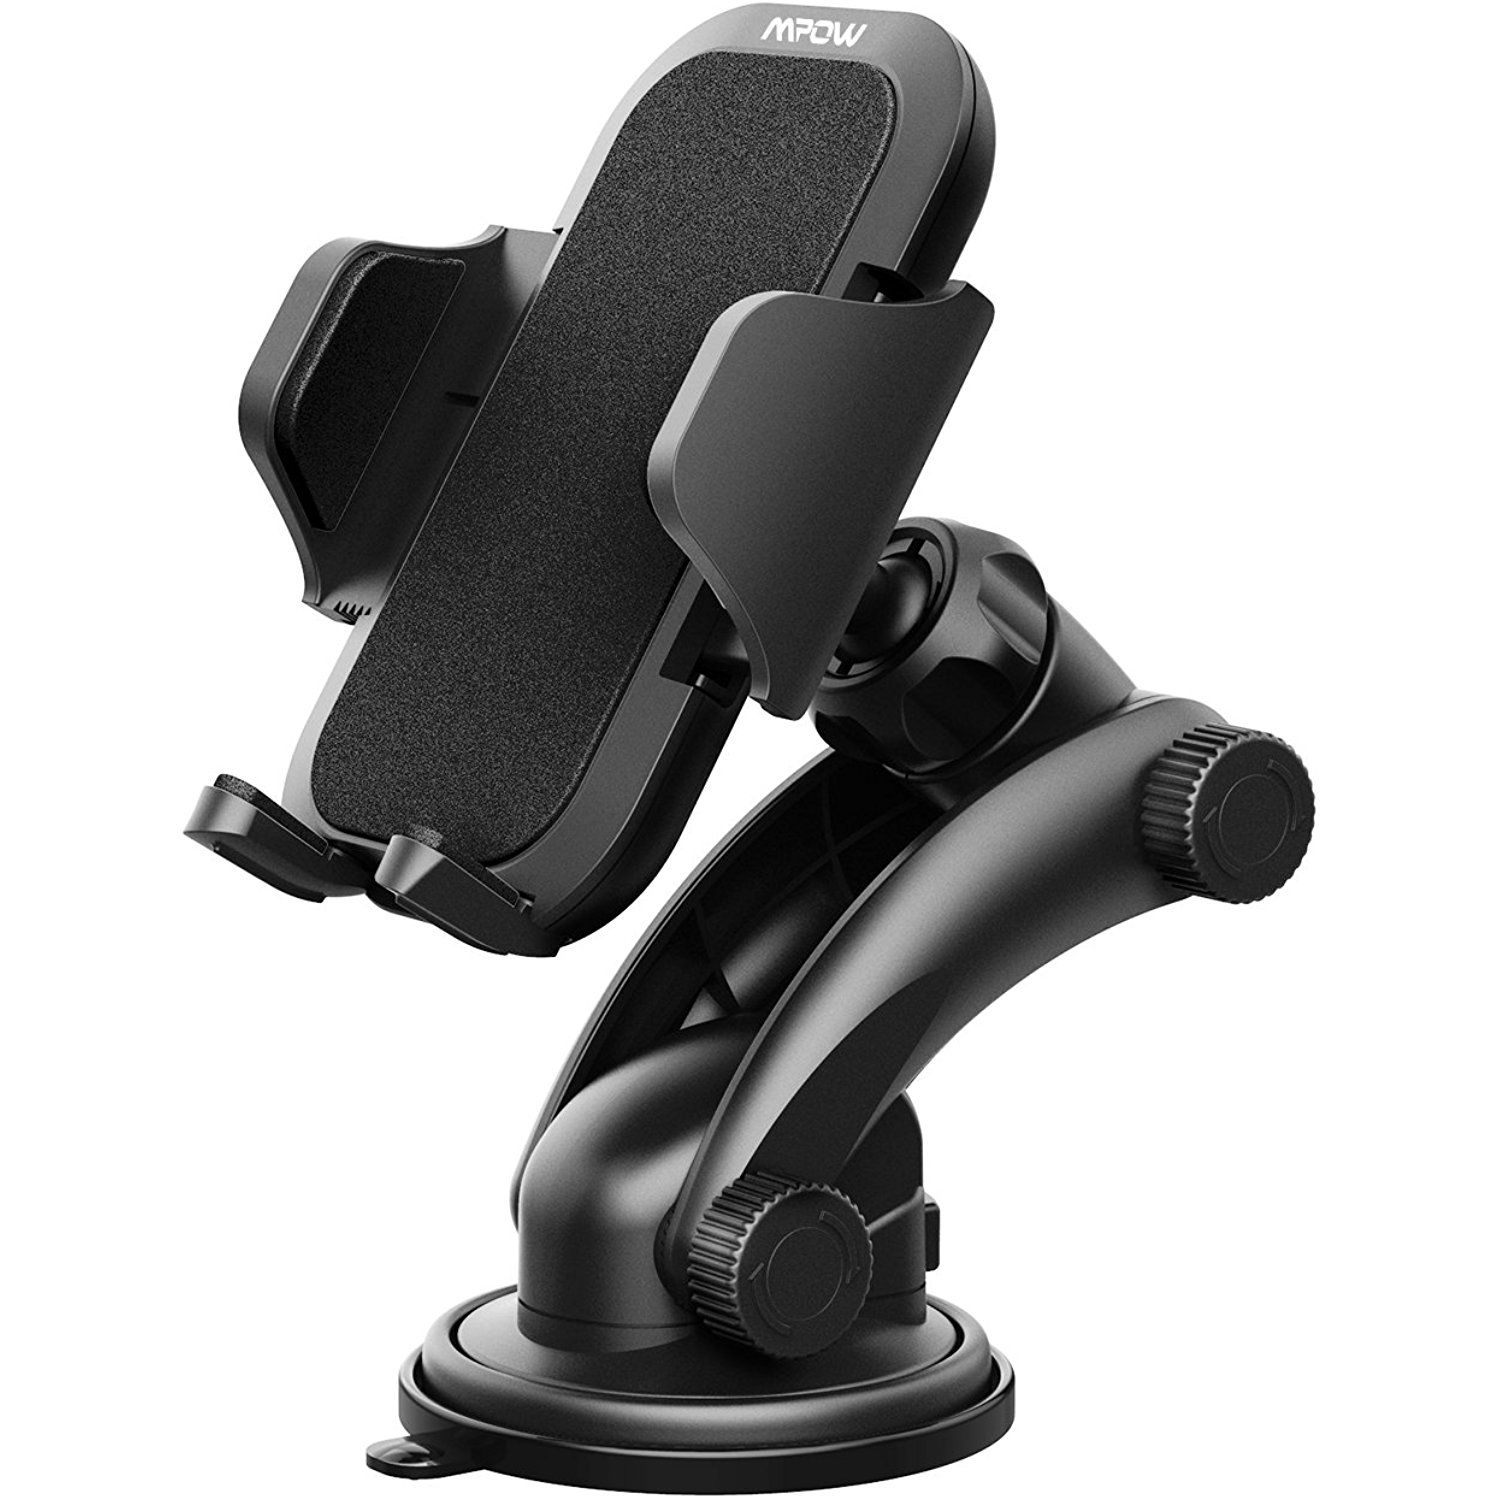 Mpow Phone Holder for Car, Universal Car Windshield